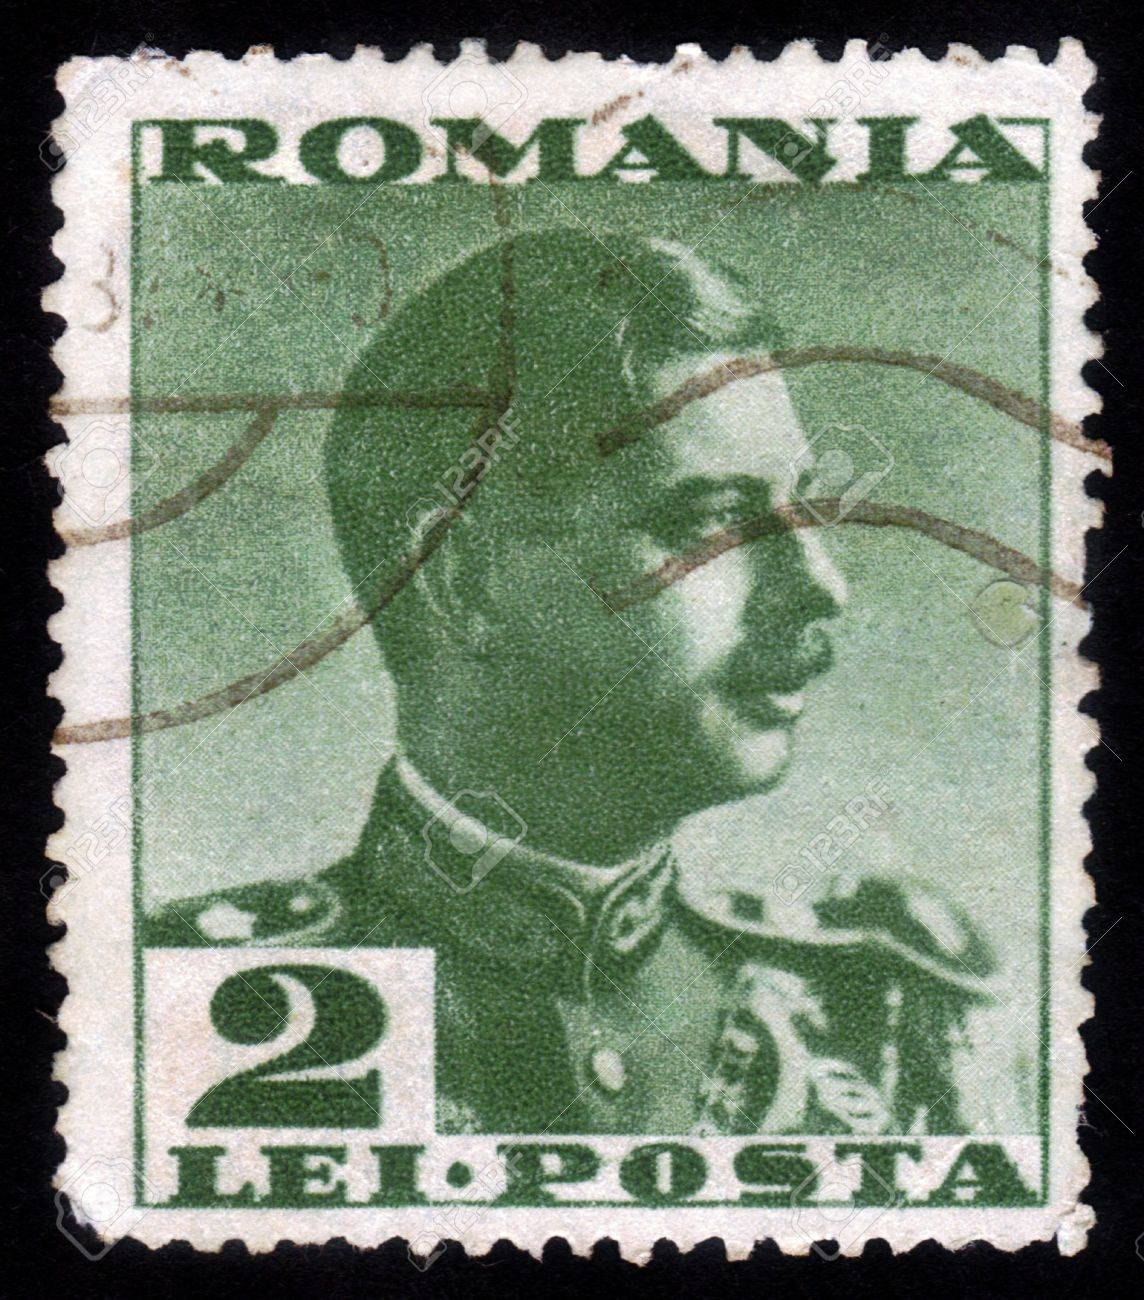 ROMANIA - CIRCA 1935: A stamp printed in the Romania, shows portrait of the King of Romania Carol II on a green background, circa 1935 Stock Photo - 15485079